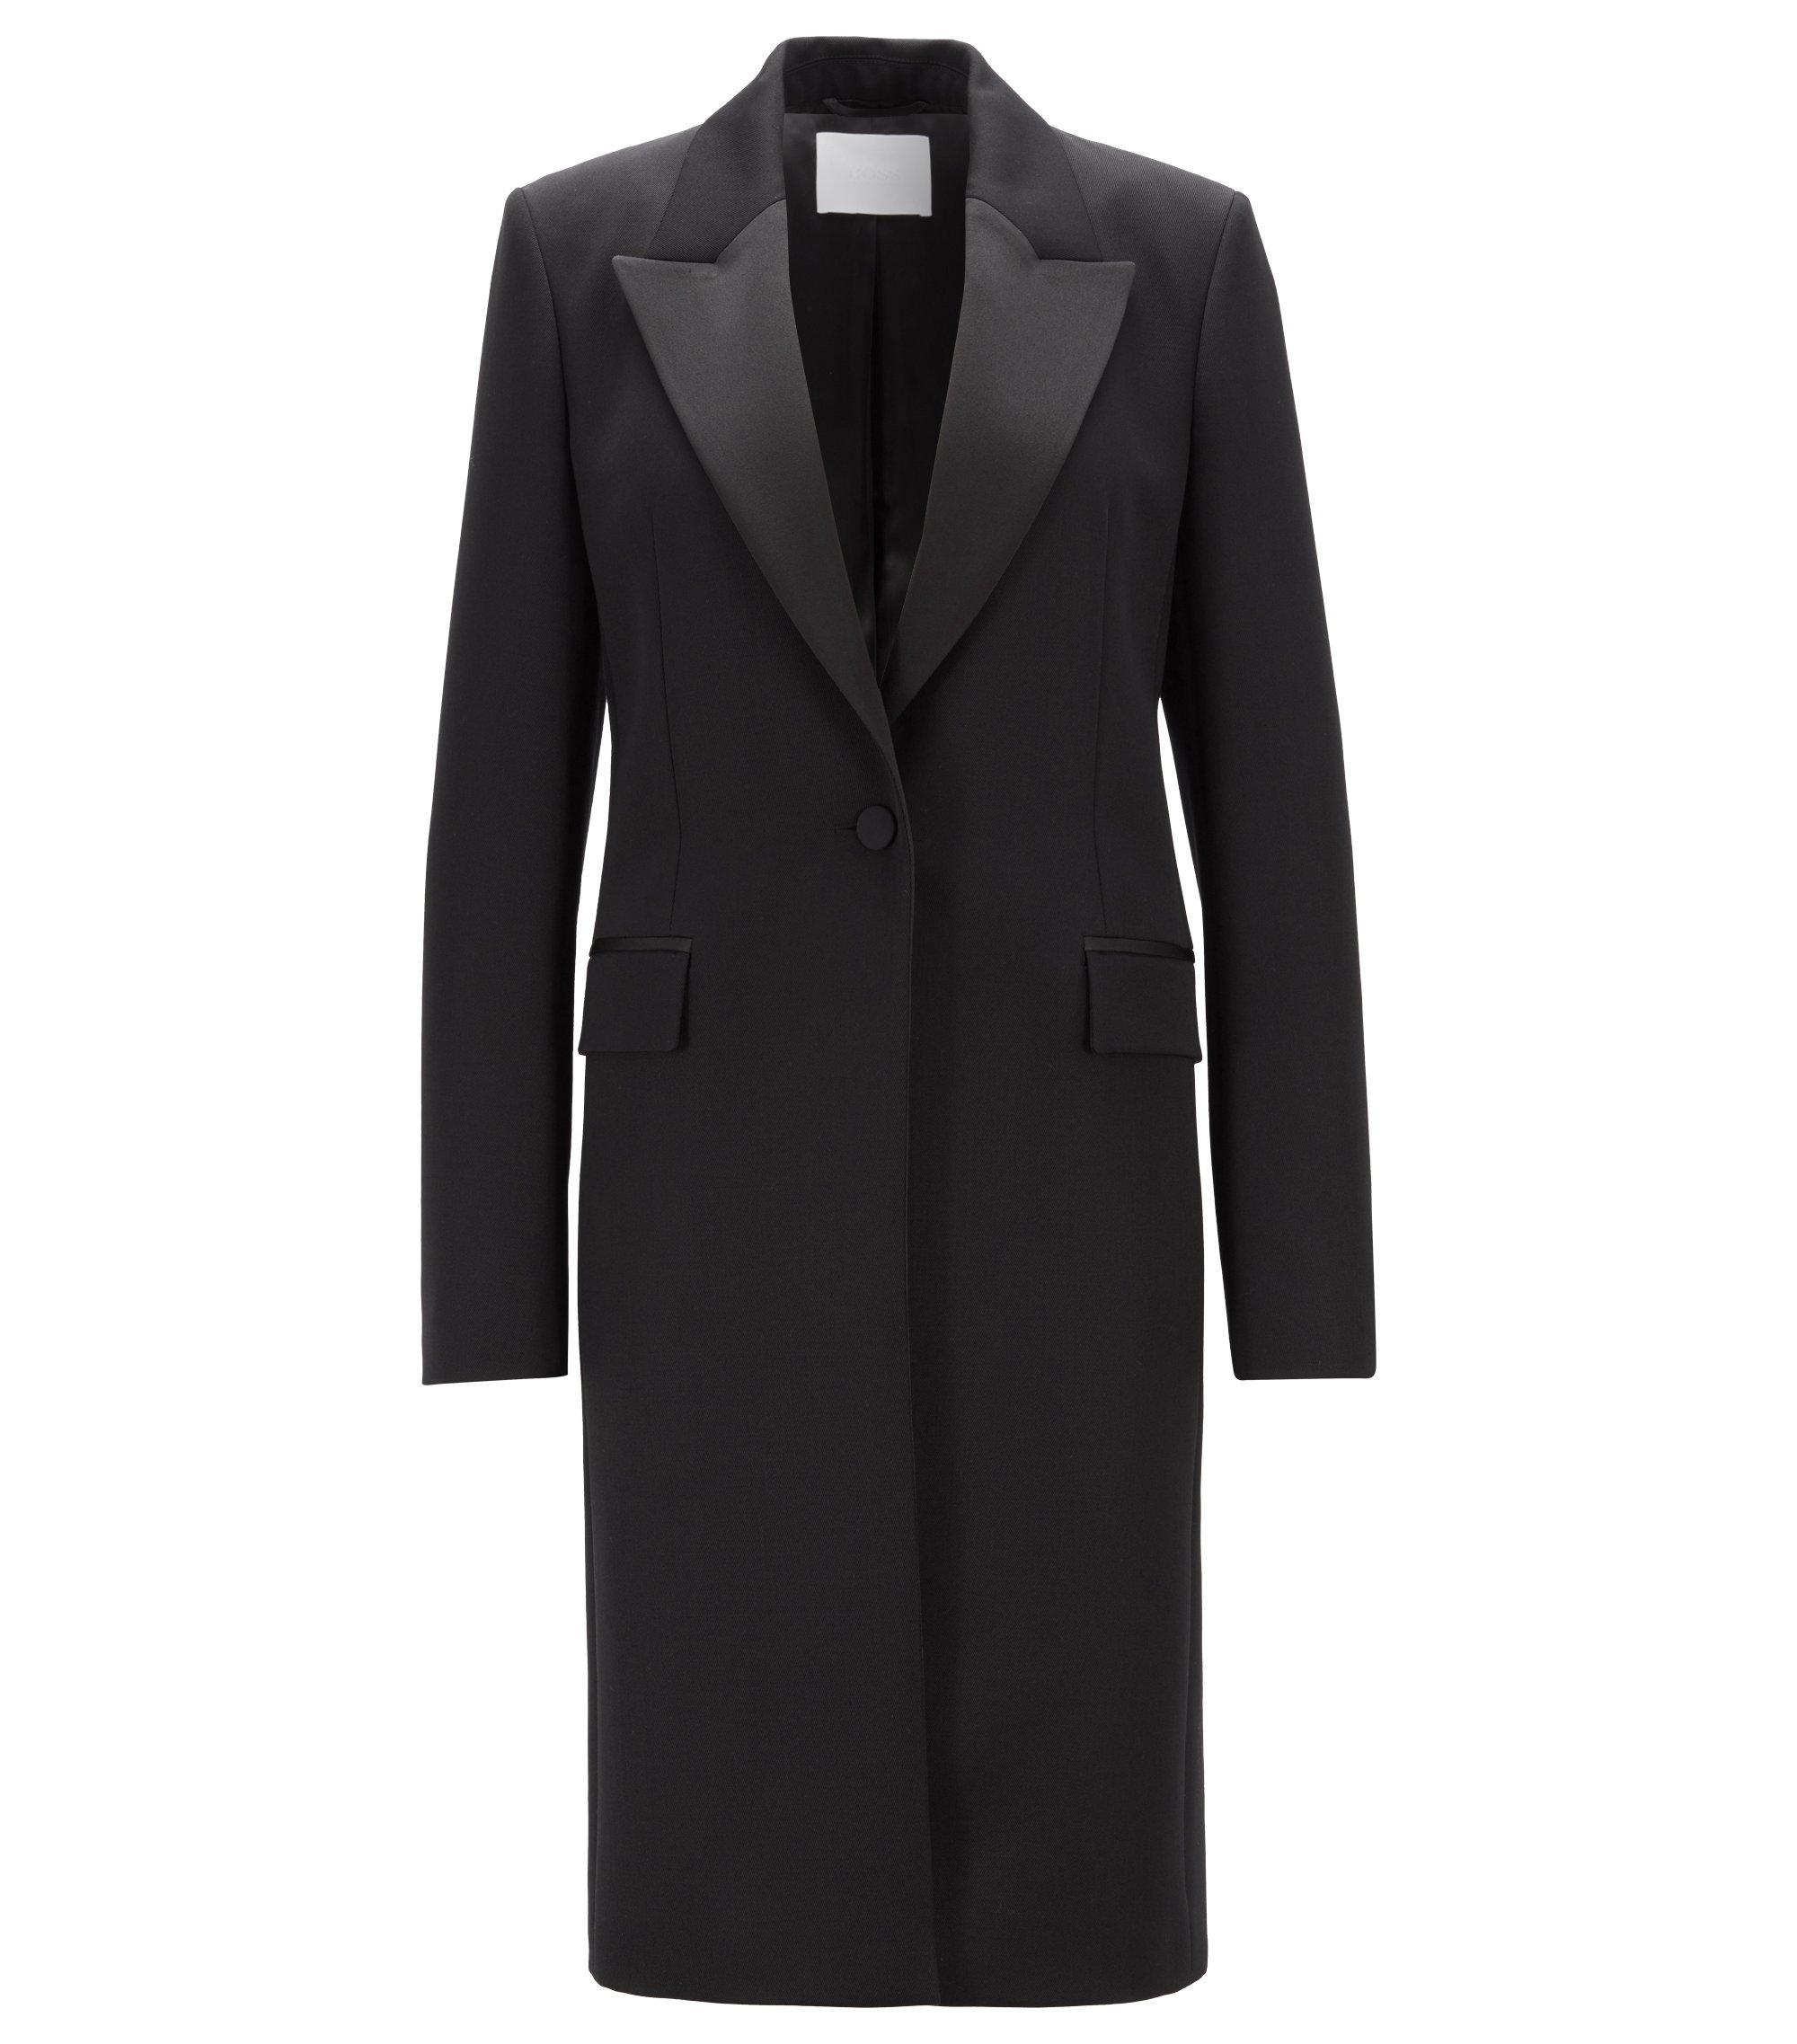 Tuxedo-style coat in Italian virgin wool, Black